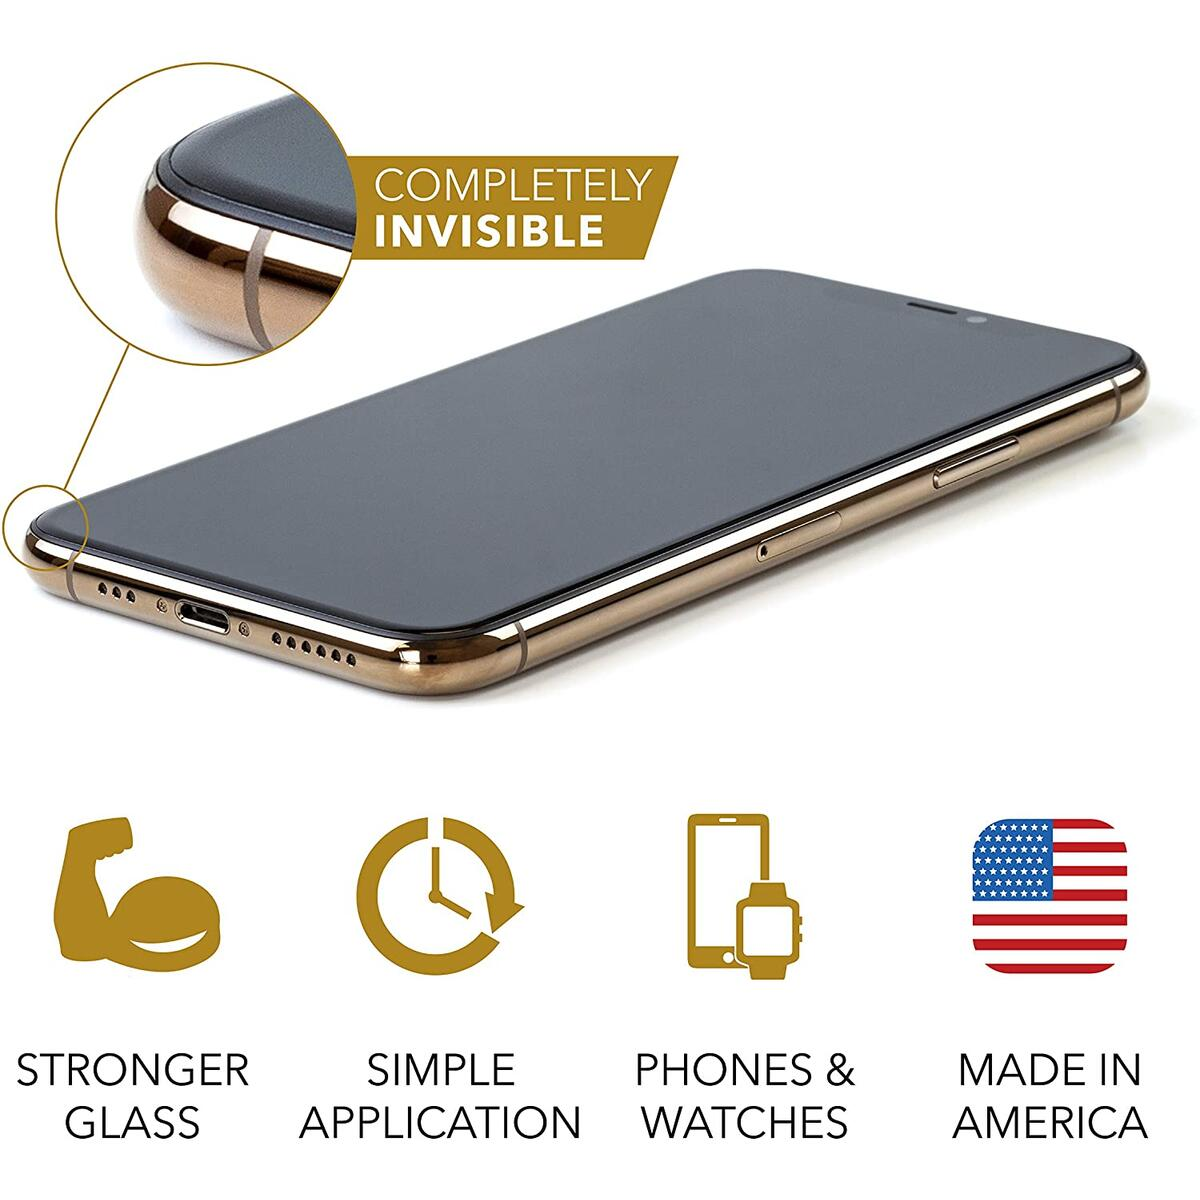 cellhelmet Liquid Glass Pro+ Screen Protector | $300 Screen Repair Guarantee | Universal for All iPhone, Apple Watch, Samsung Galaxy Phones | Made in USA | As Seen on Shark Tank | Retail Packaged